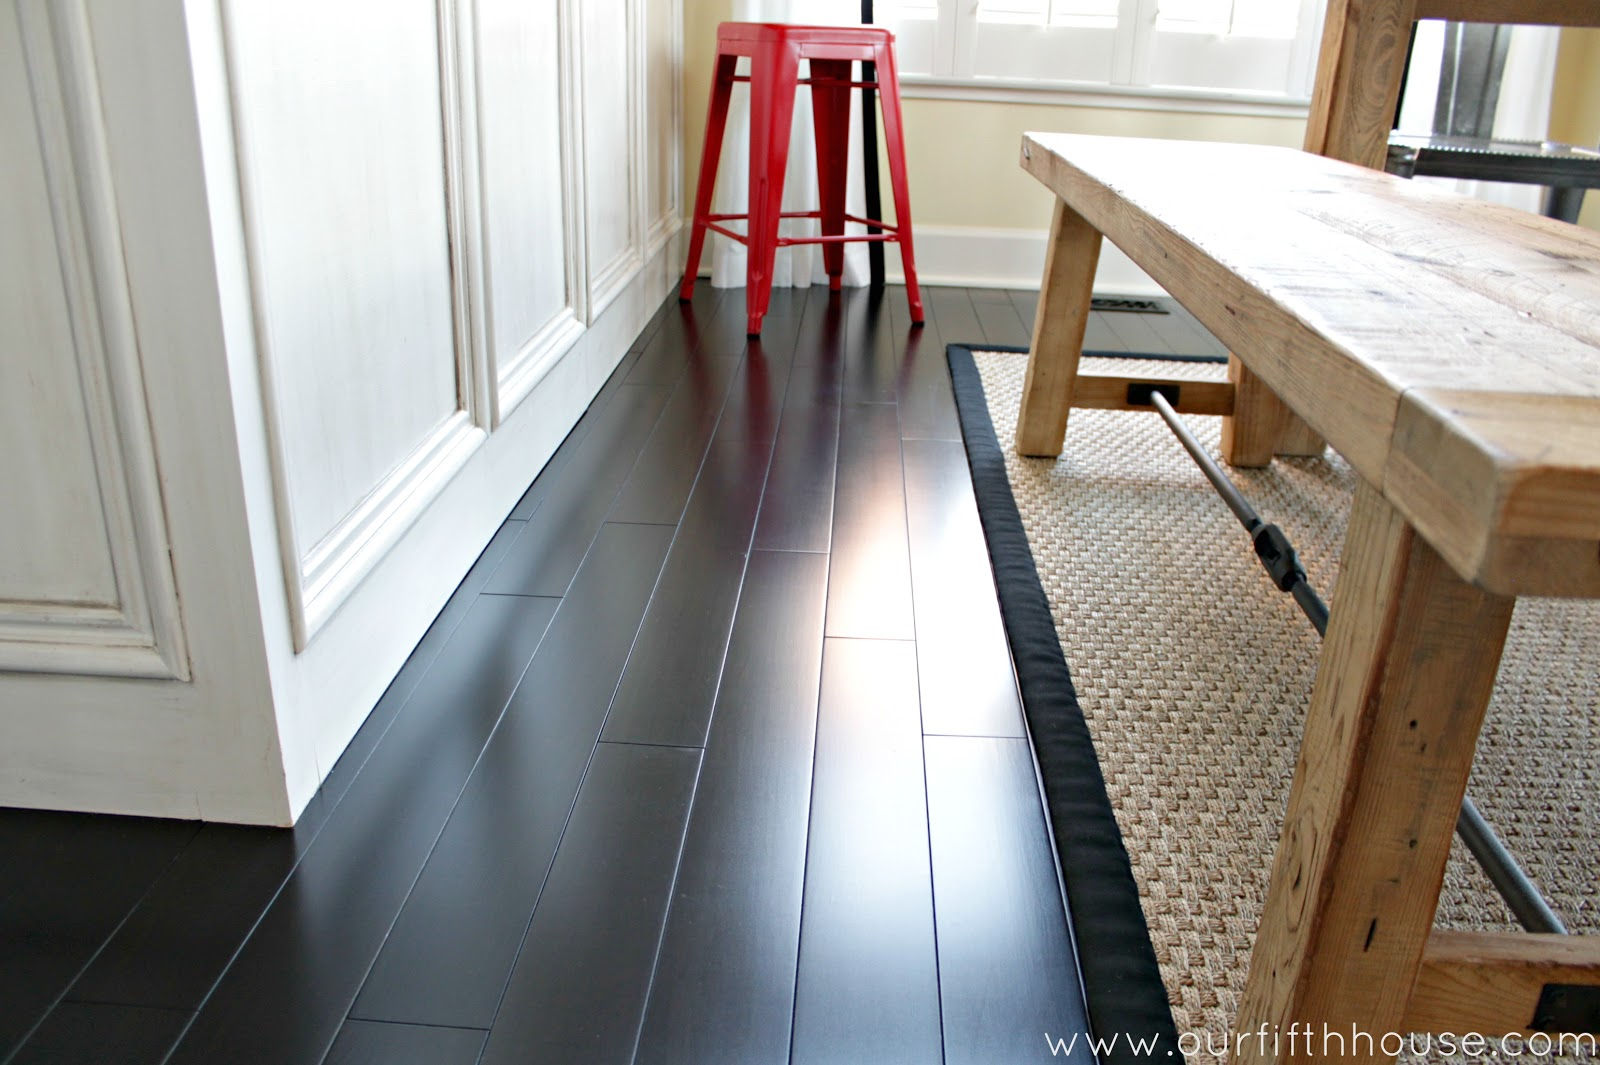 Laminate Floor Vacuum how to properly clean hardwood floors with a vacuum Dark Wood Floor Maintenance